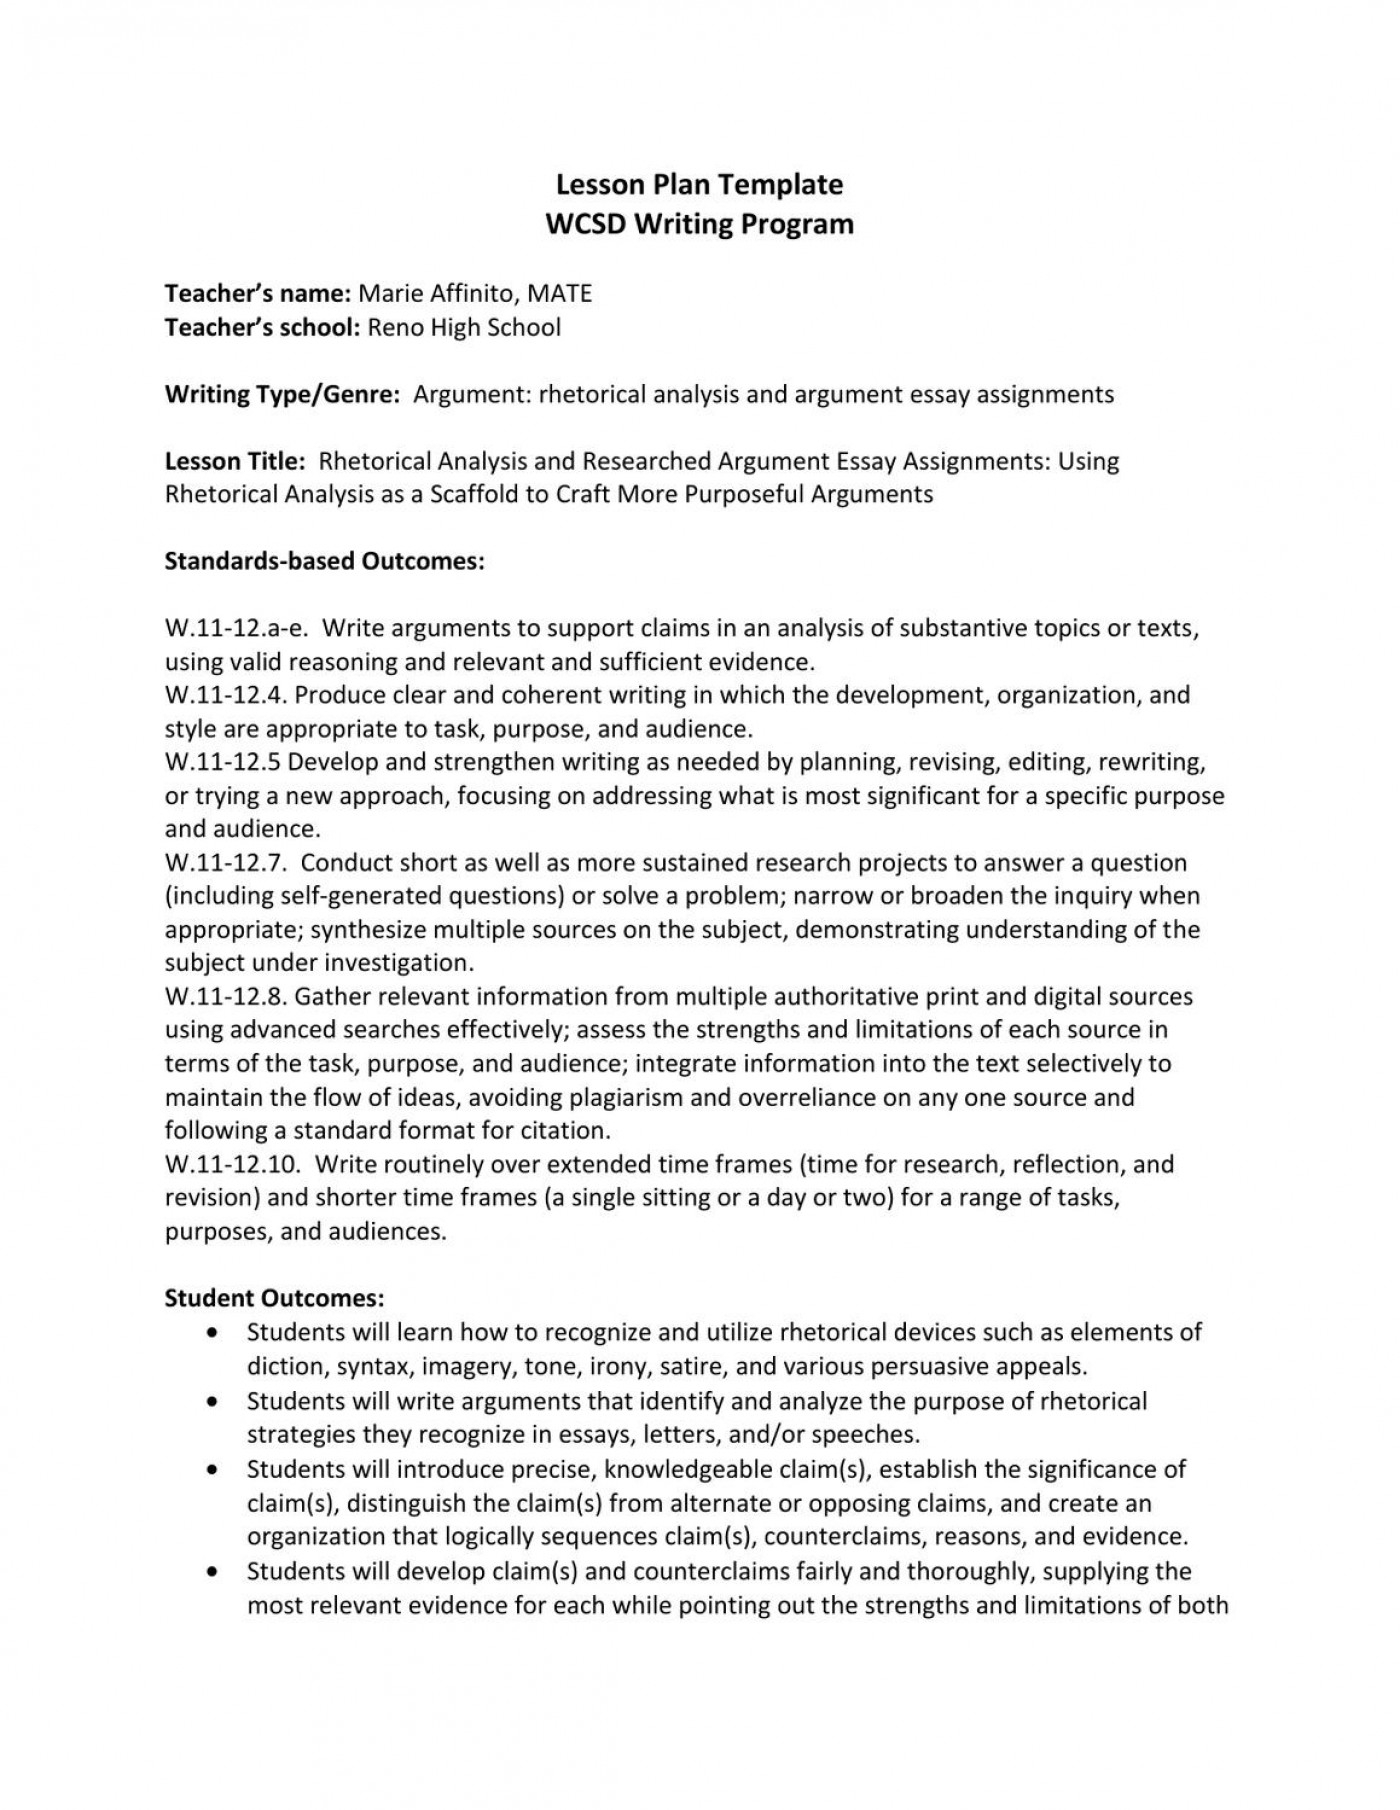 002 Essay Example Page 1 Why Do Authors Use Rhetorical Devices In Frightening Essays Brainly 1400